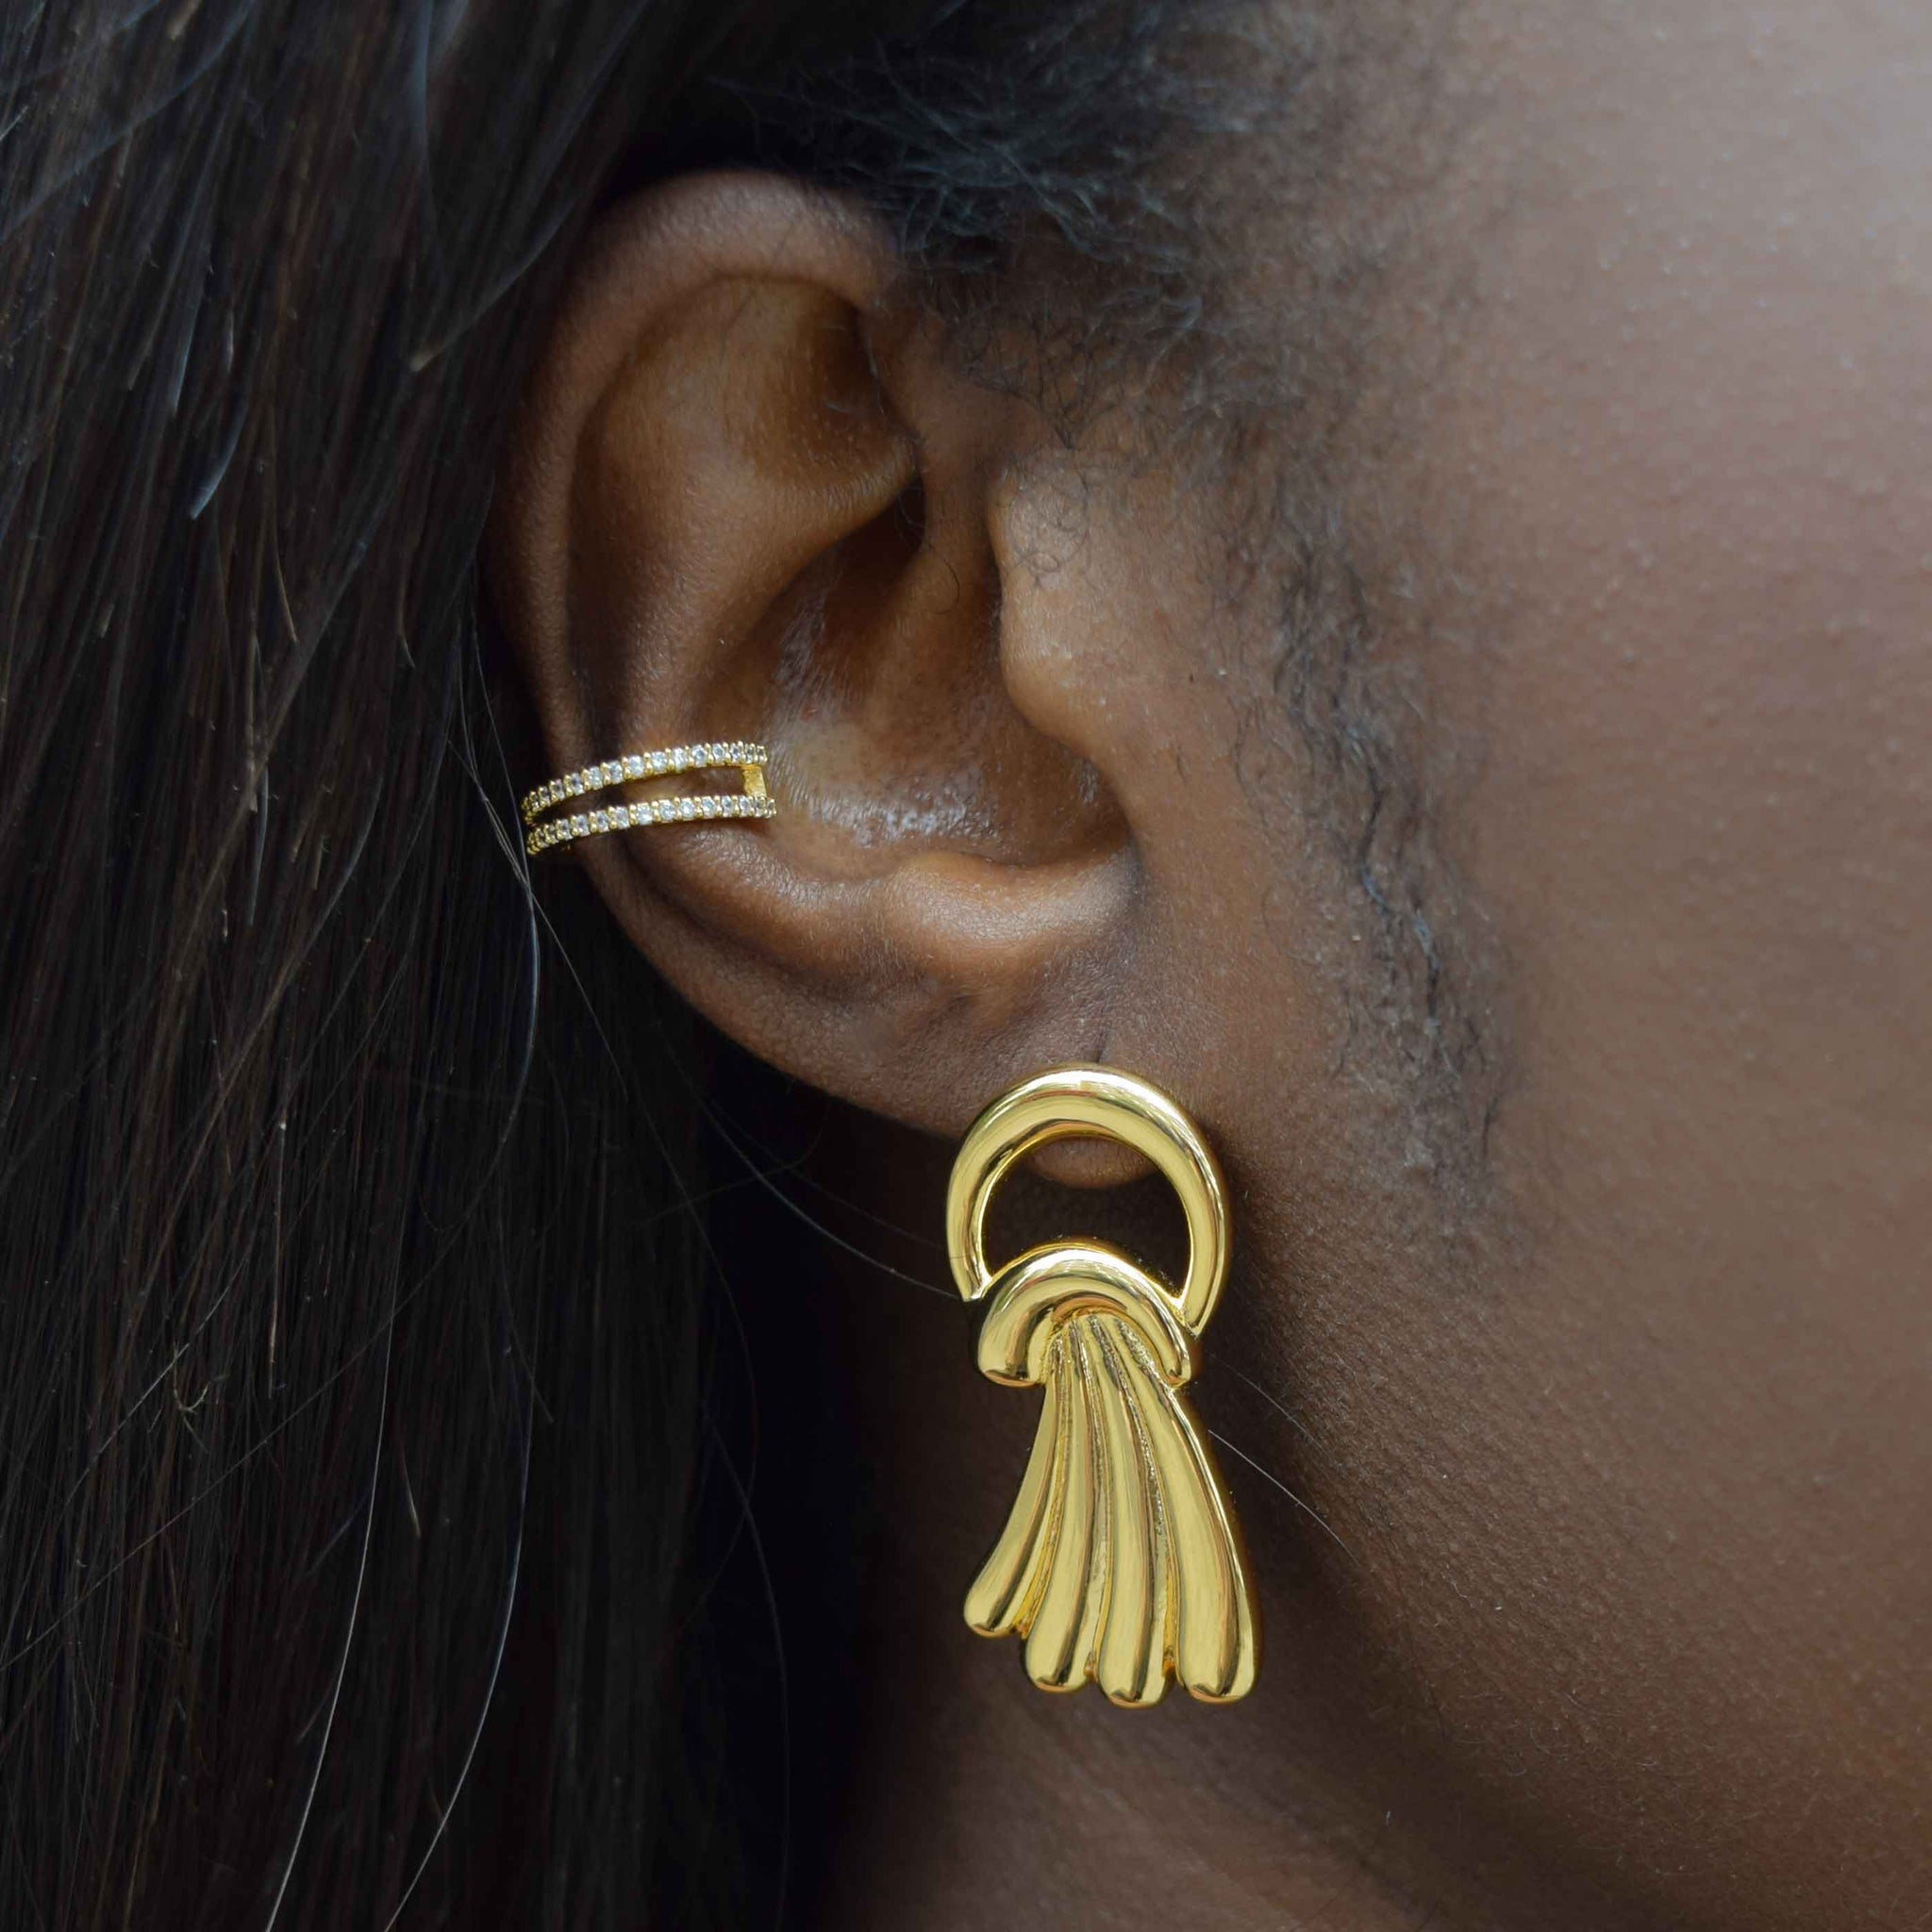 gold wishbone ear cuff on ear stack